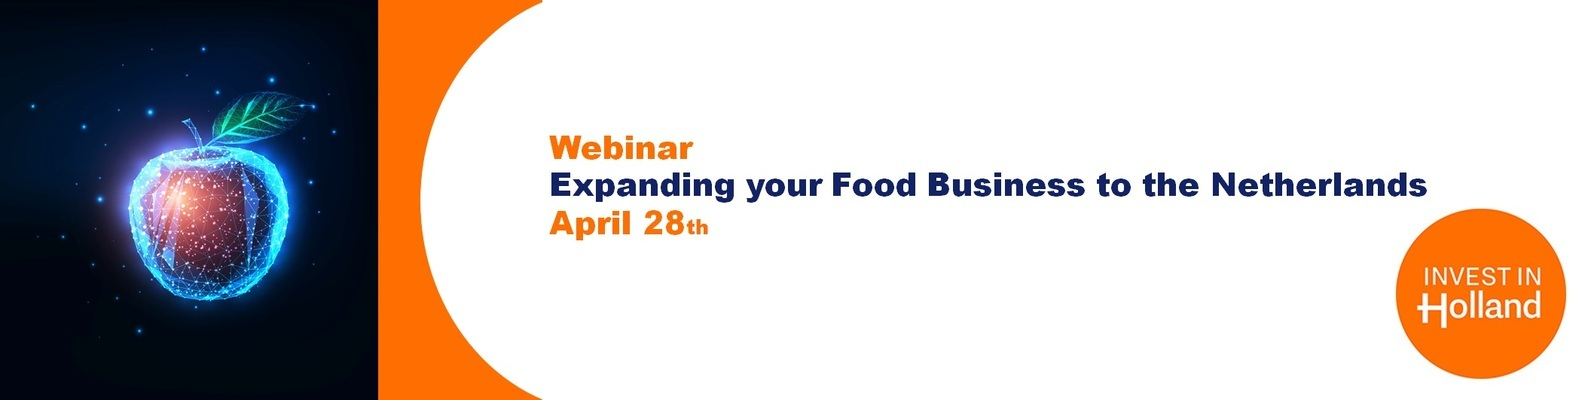 Webinar Expanding your food business to the Netherlands